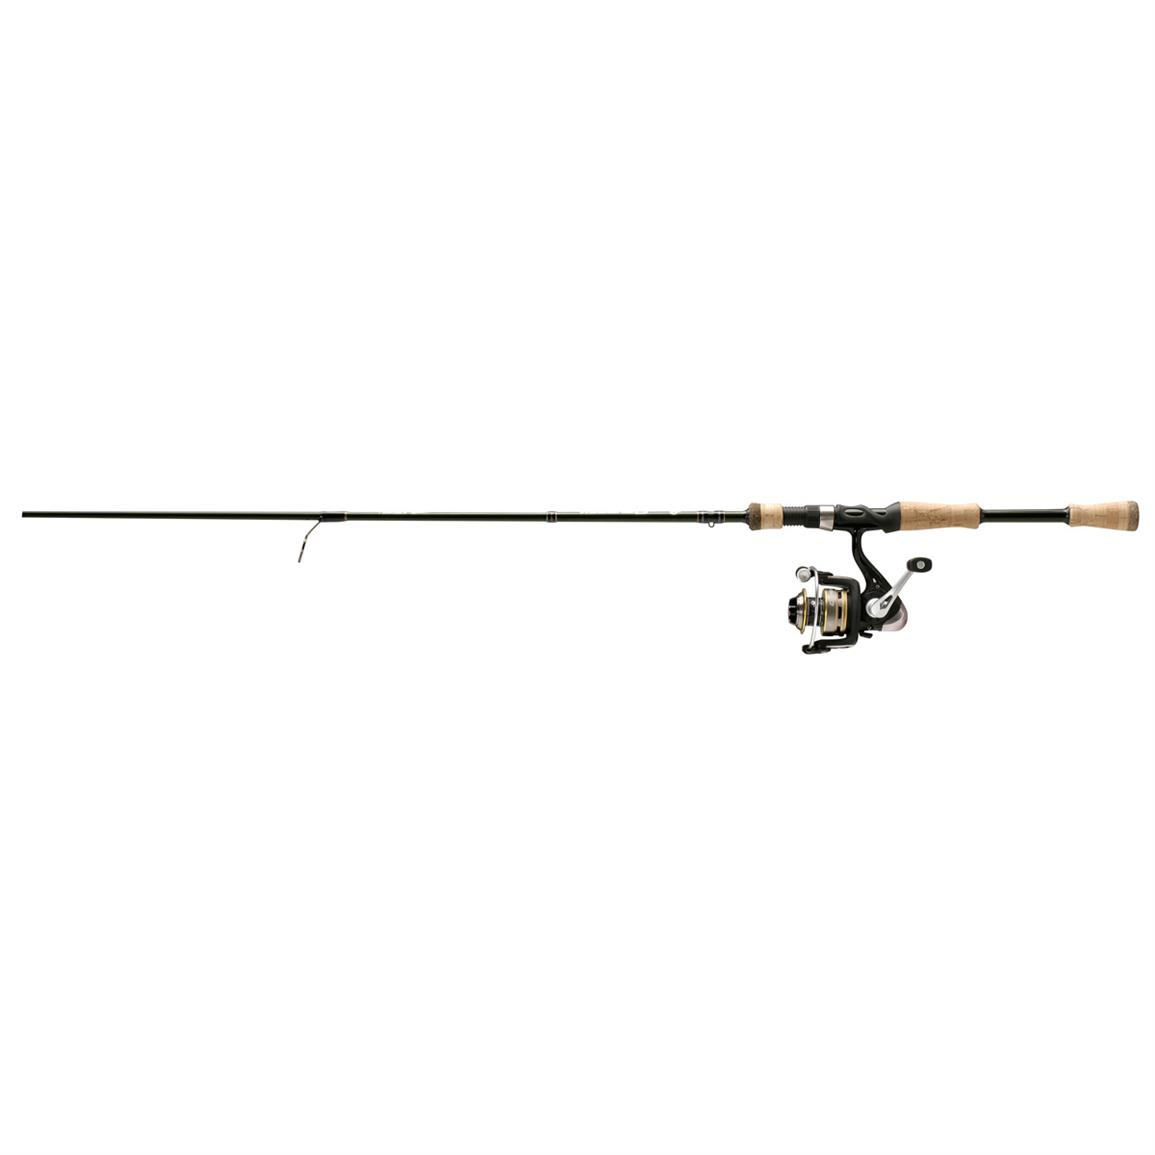 No. 8 Odyssey Spinning Combo